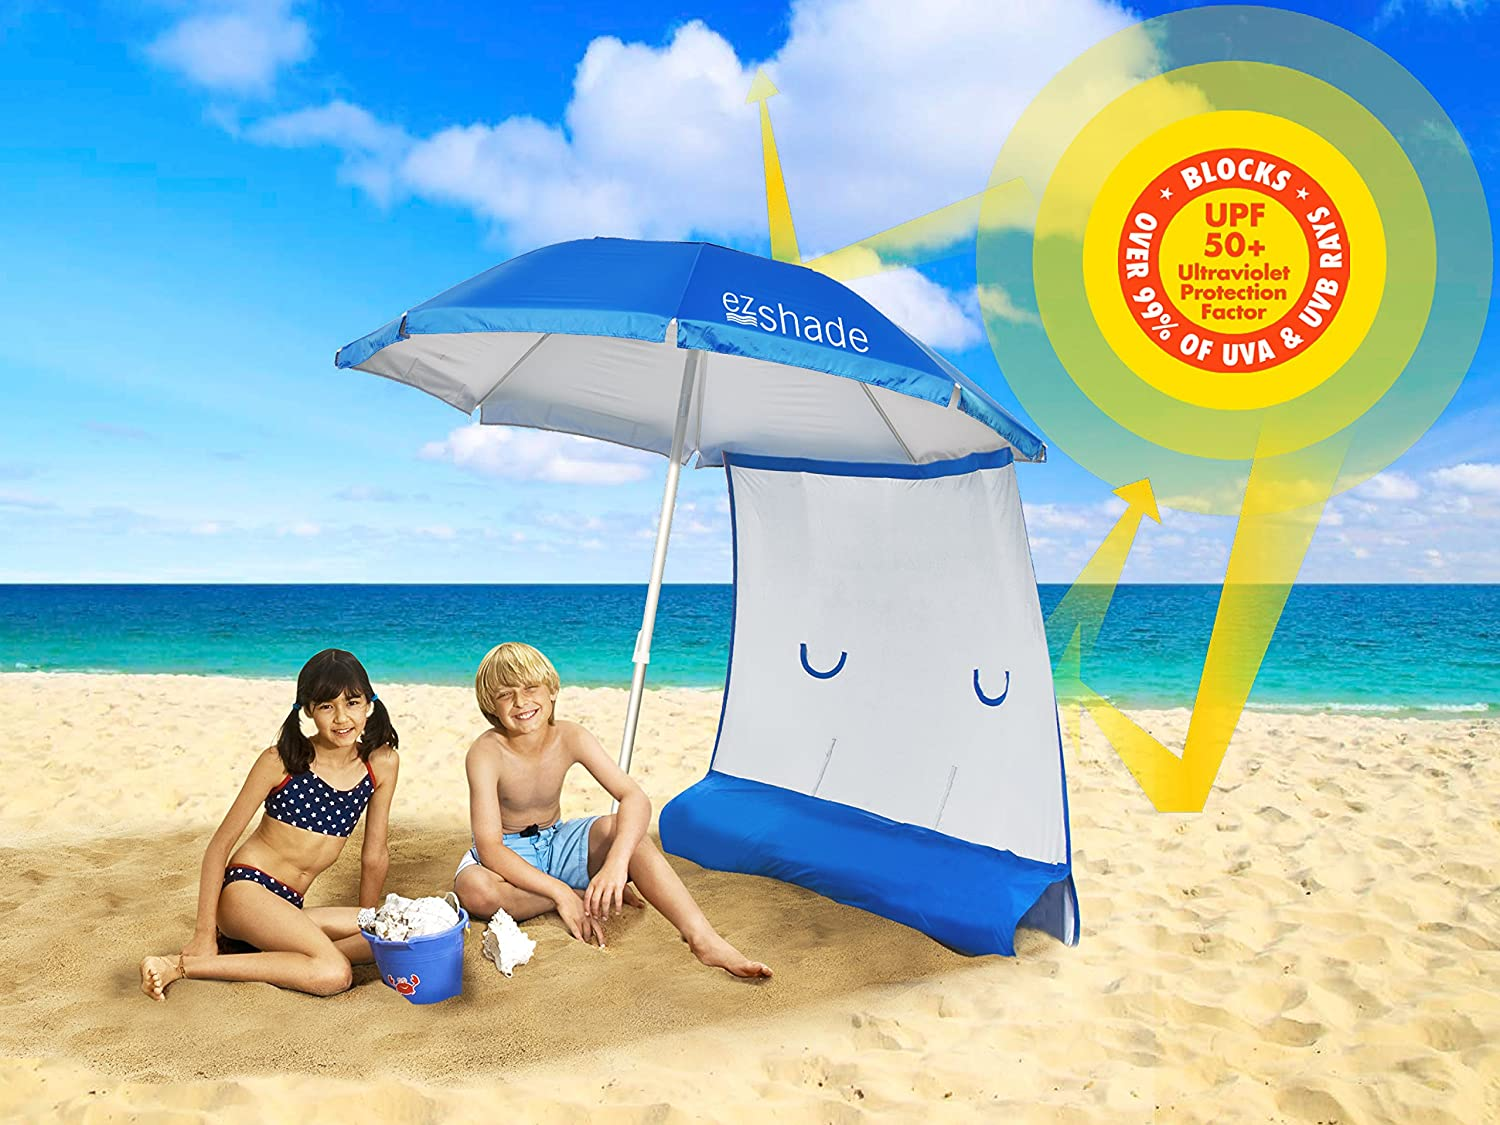 9213fb40ae7e Amazon.com: ezShade Superior Sun Protection, 7' Steel Beach Umbrella &  Sunshield Combo, Blocks 99% UVA/UVB, Doubles Your Shade and Keeps You  Cooler.